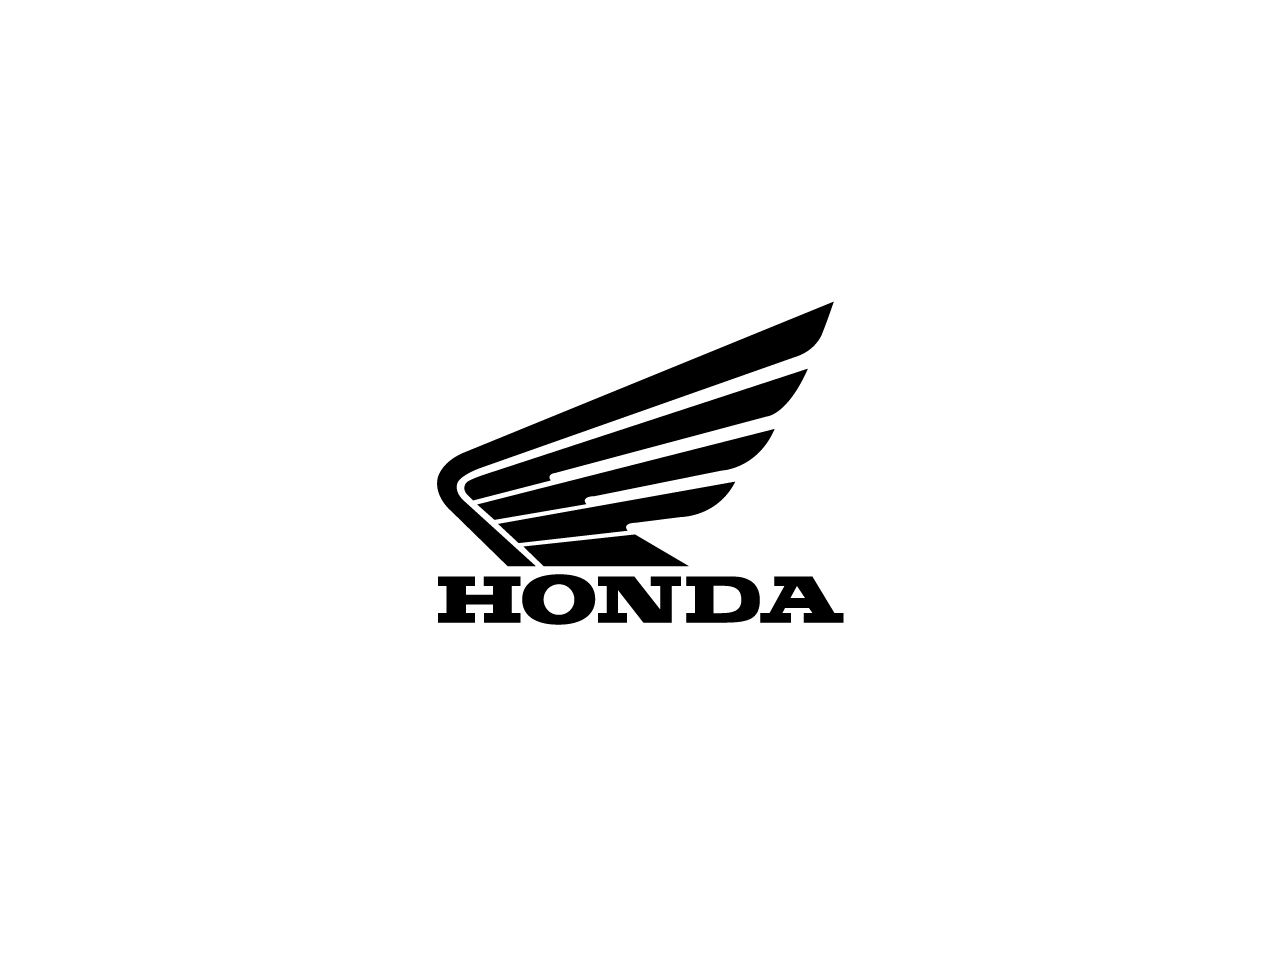 honda motorcycle logo wallpaper widescreen 2 hd wallpapers. Black Bedroom Furniture Sets. Home Design Ideas